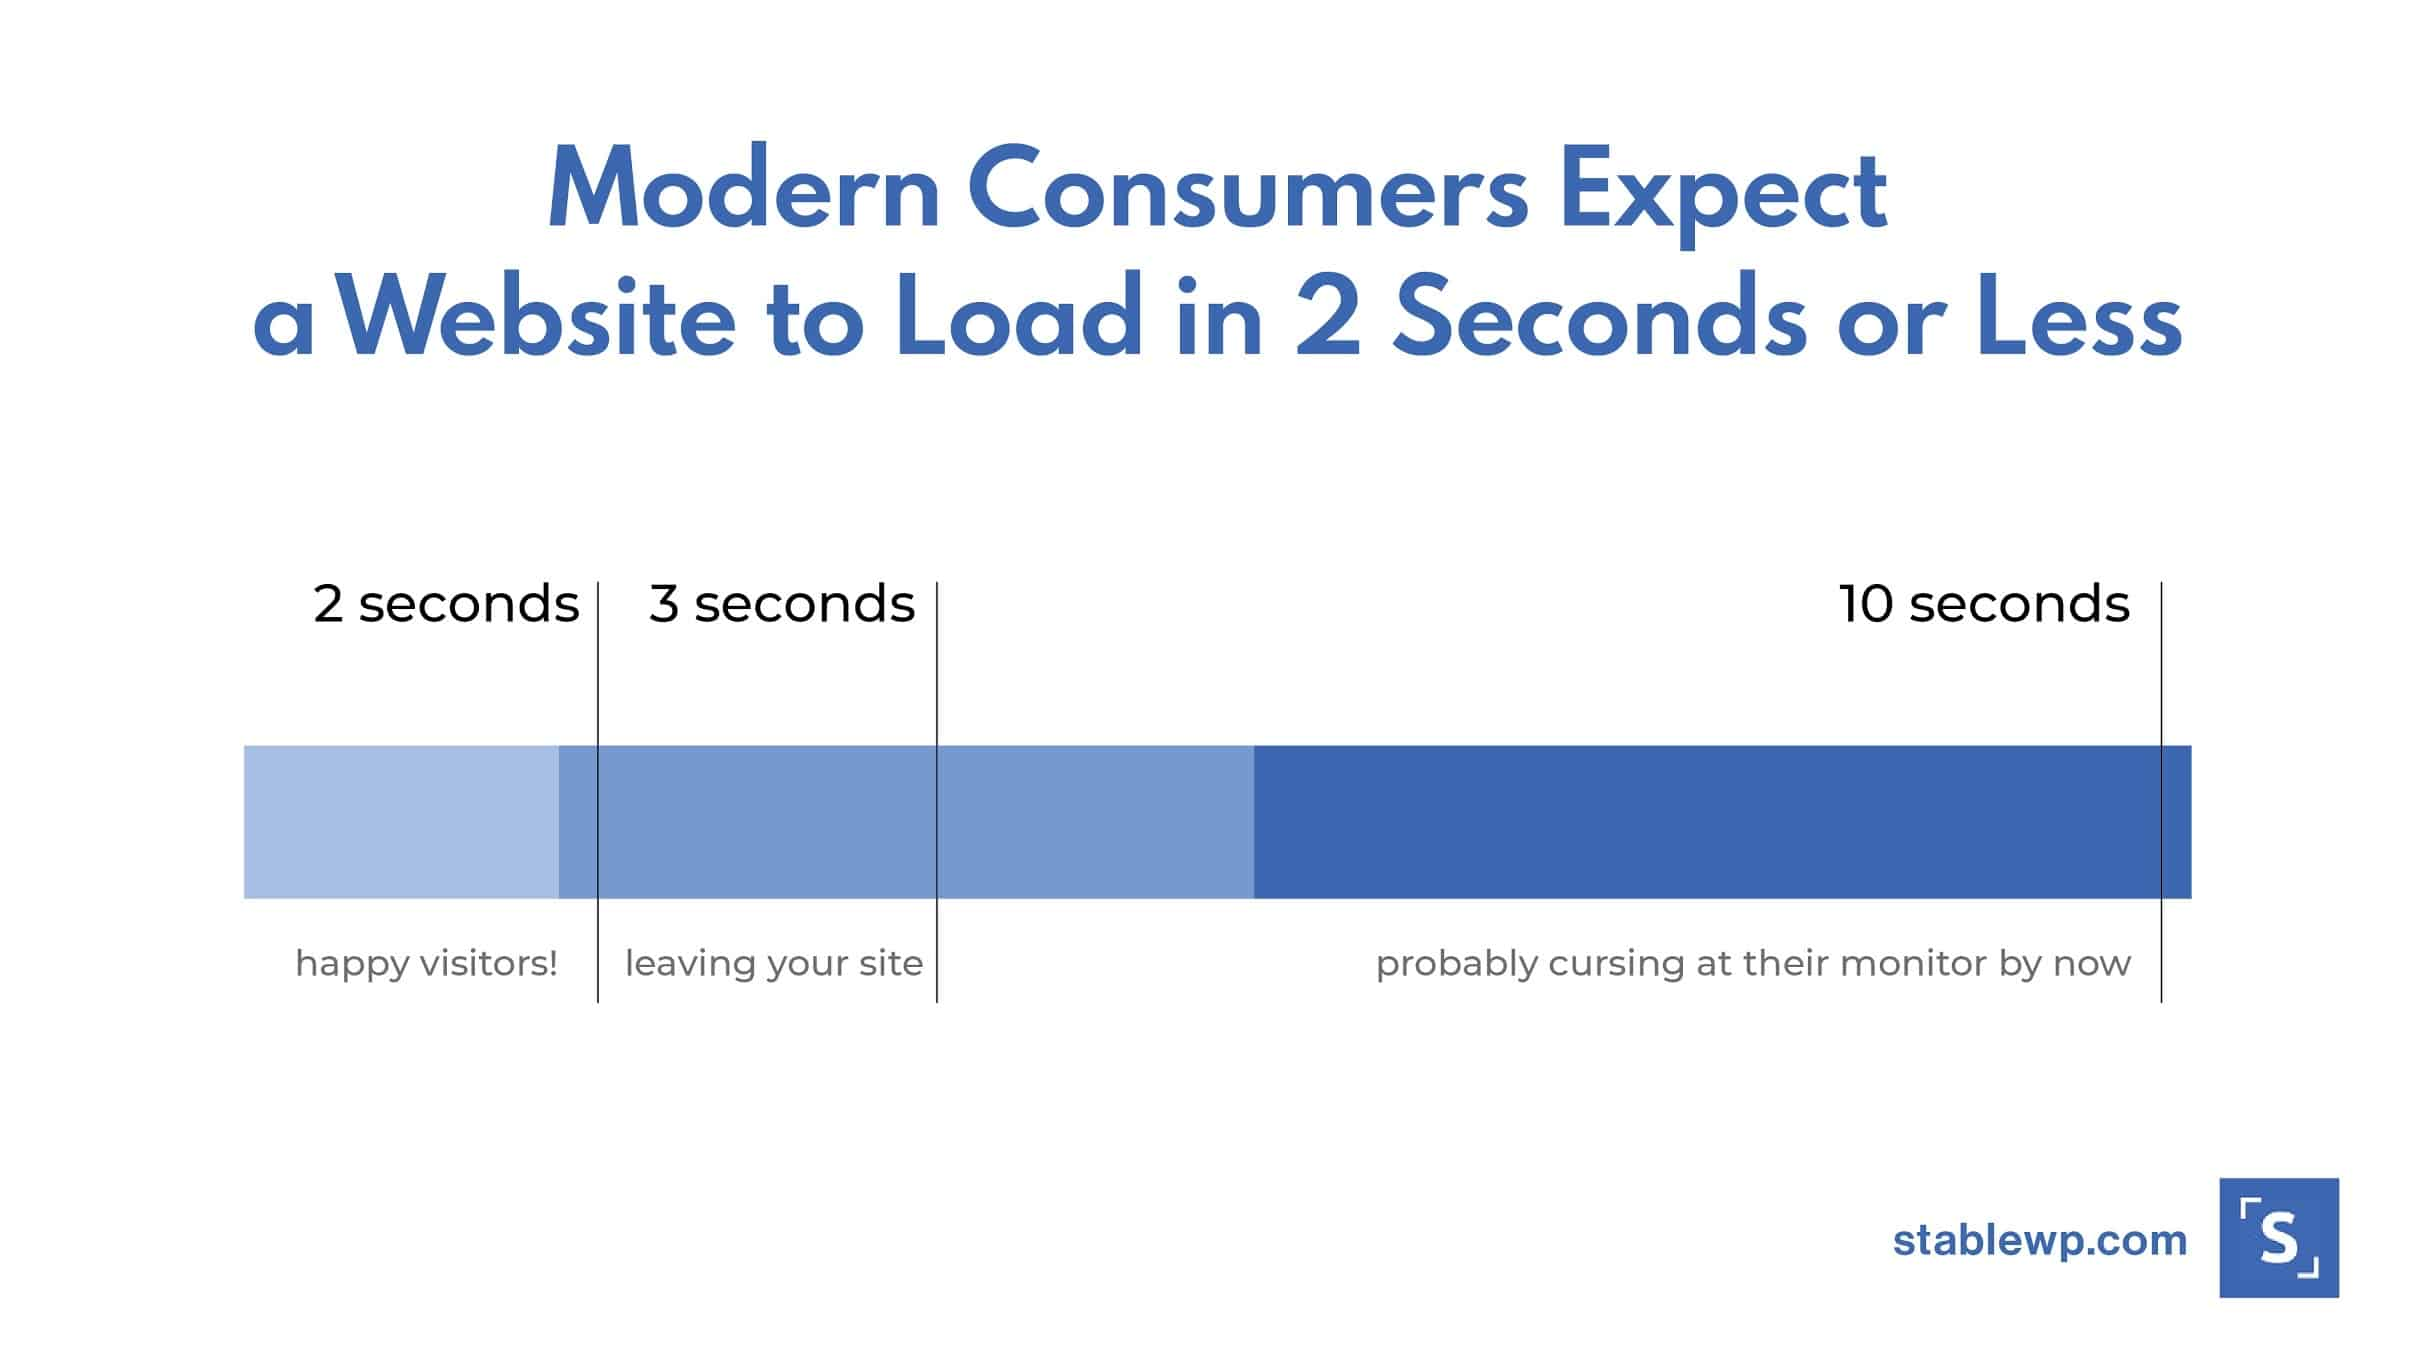 modern consumers expect a website to load in 2 seconds or less